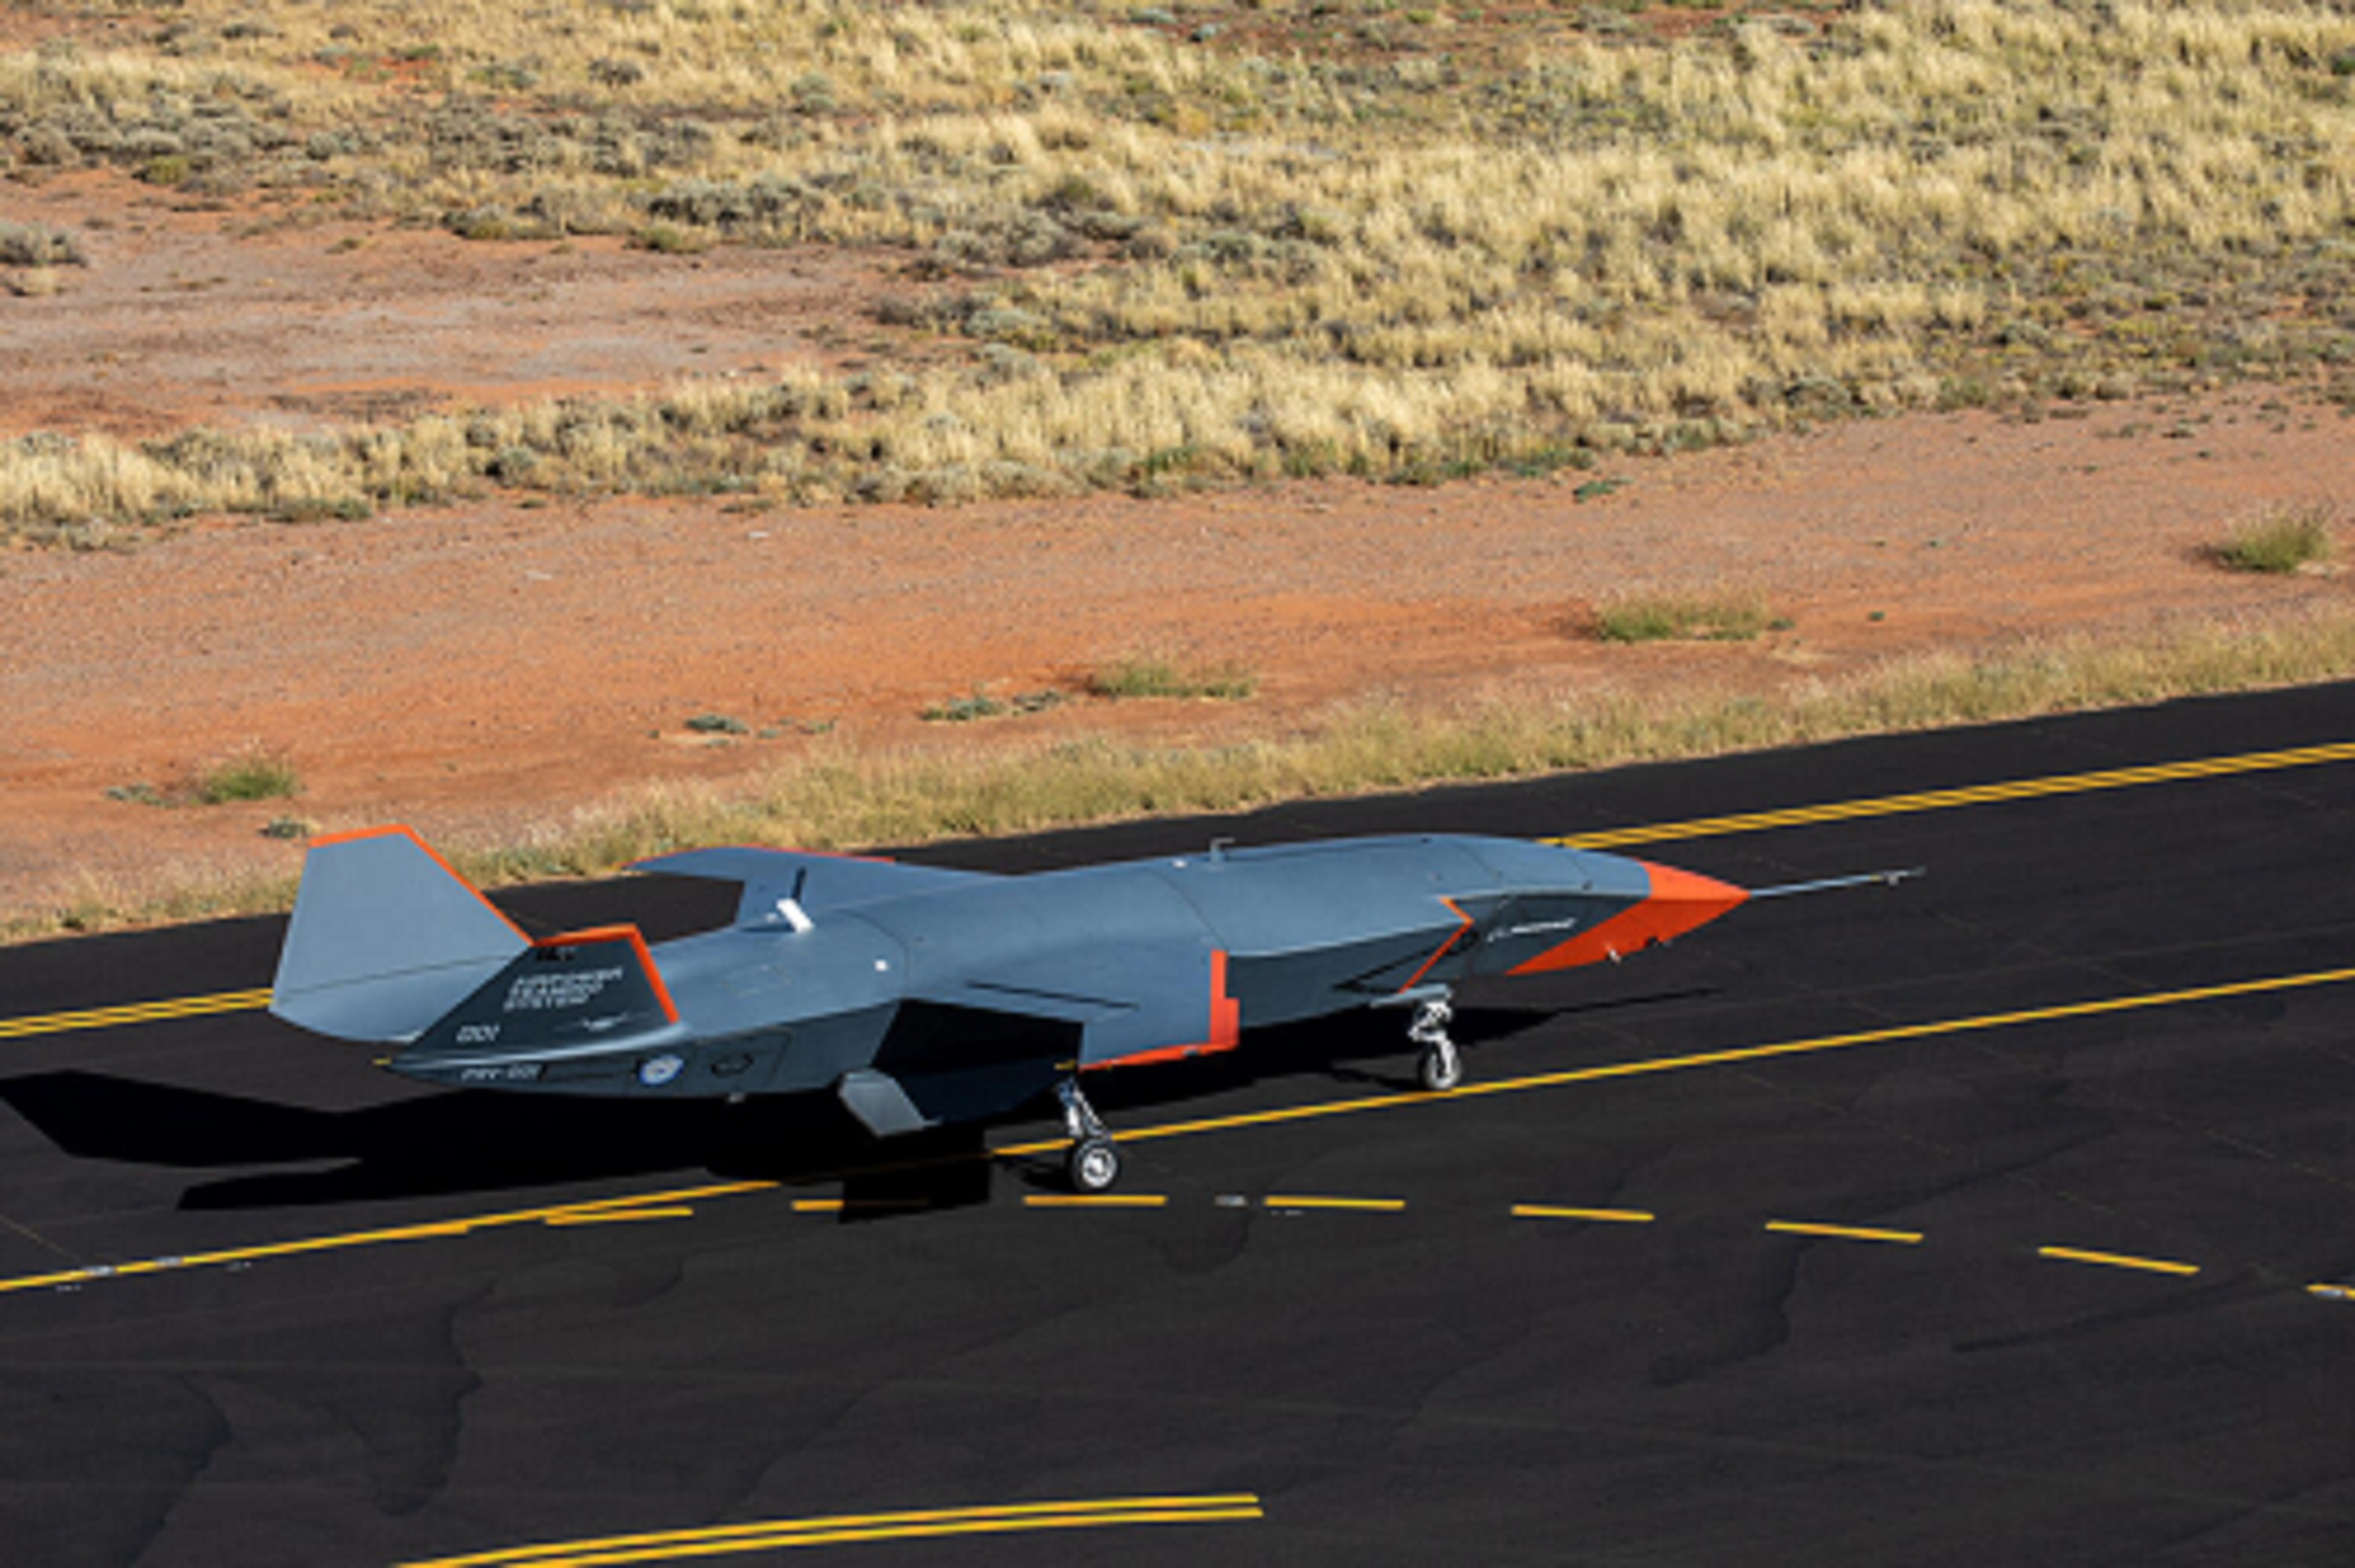 Boeing Australia Loyal Wingman Stealth UCAV Conducts First High-Speed Taxi Test